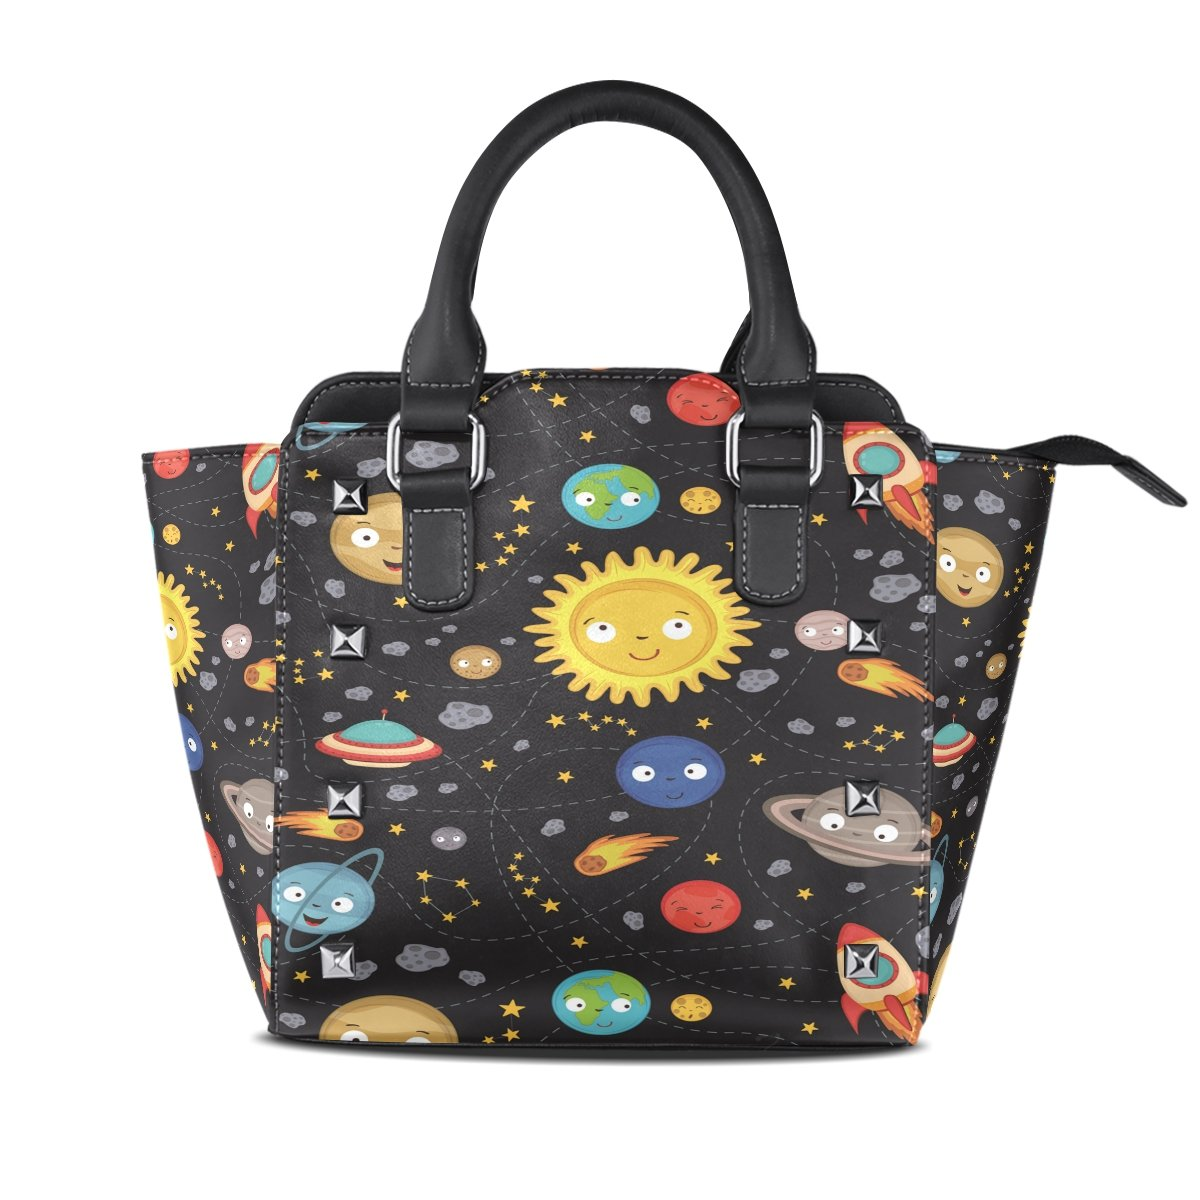 Womens Genuine Leather Hangbags Tote Bags Celestial Body Purse Shoulder Bags